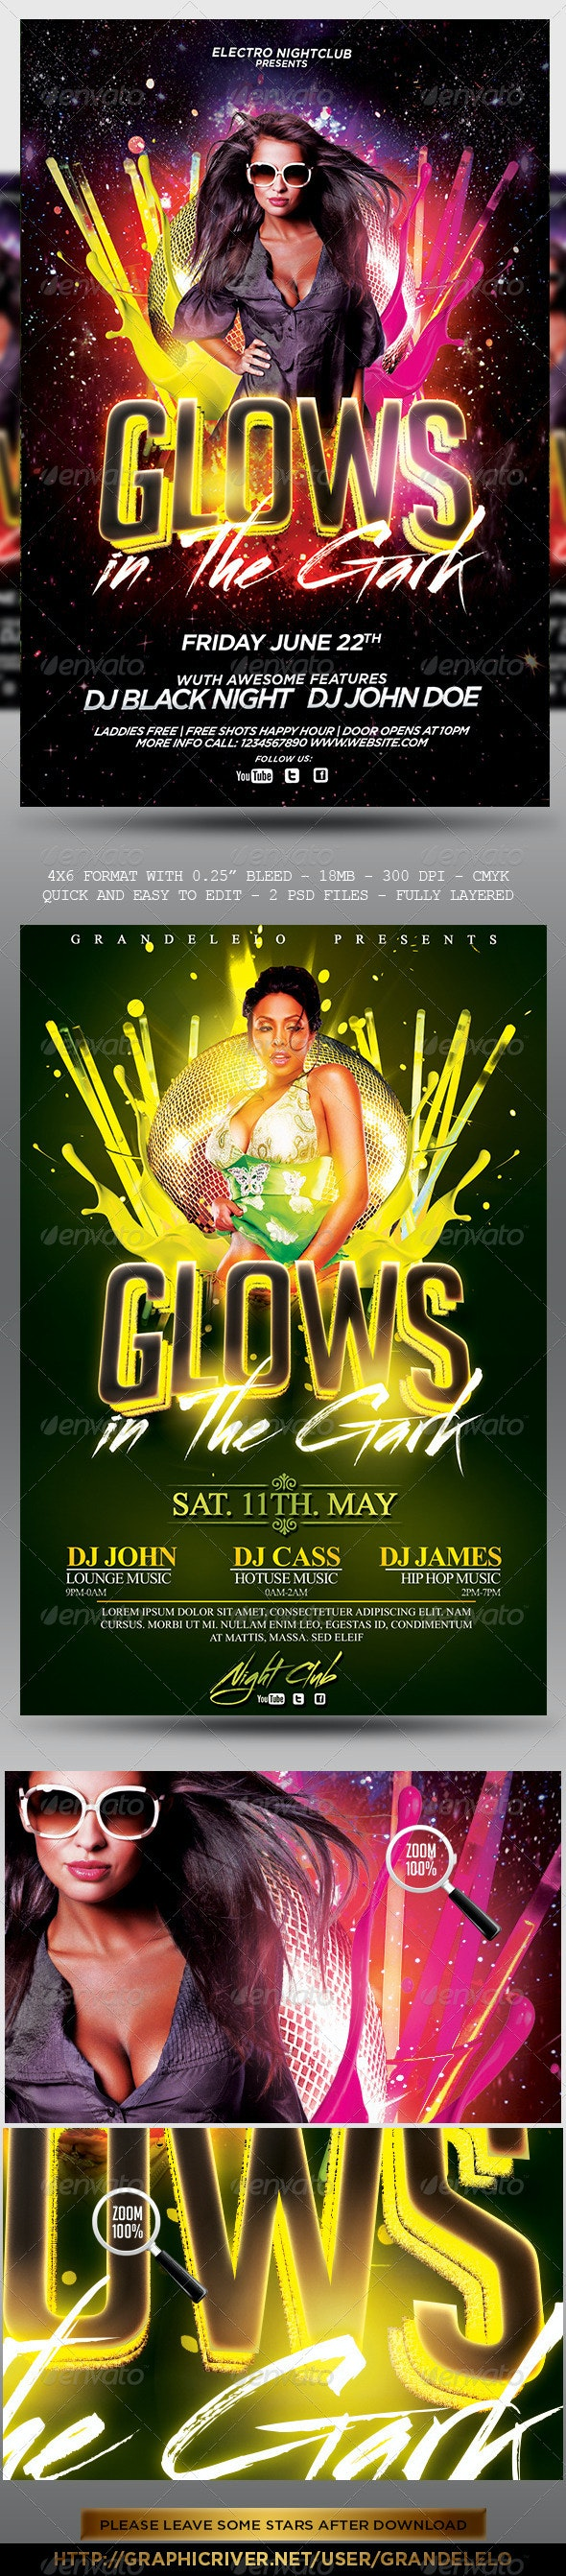 Glows in the Dark Party Flyer - Clubs & Parties Events